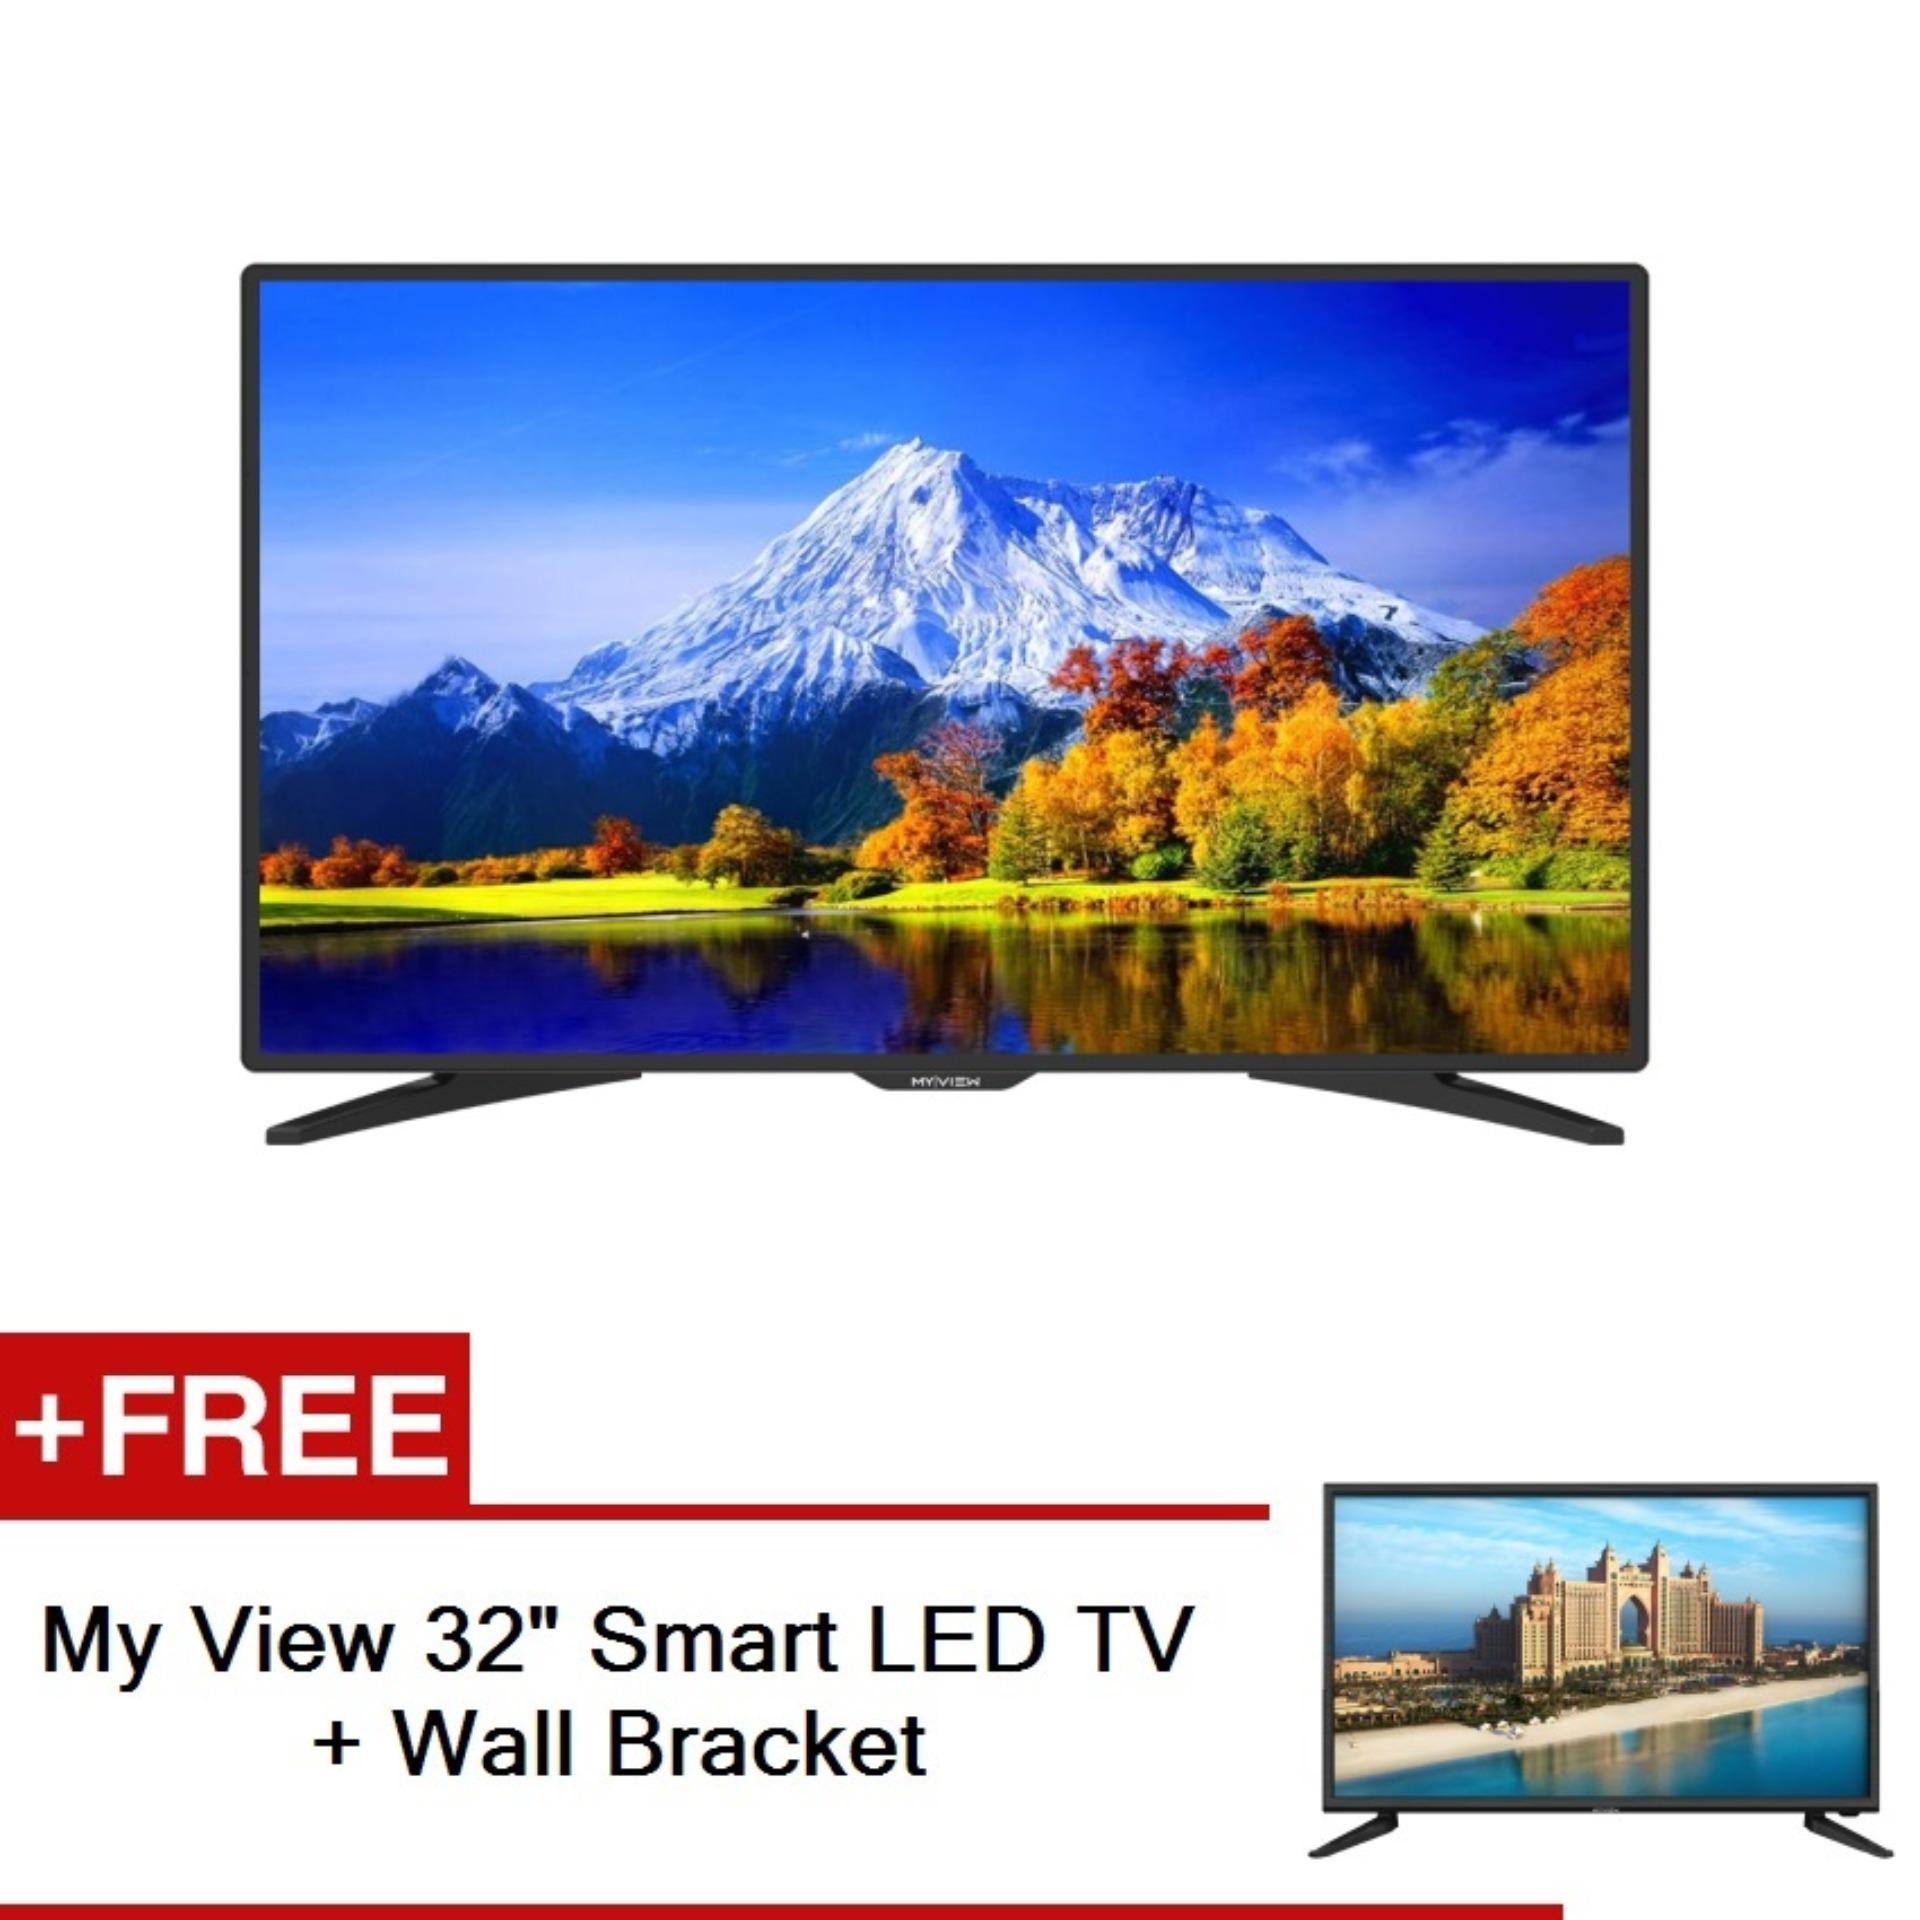 myview 50 led tv full hd free my view 32 smart tv philippines